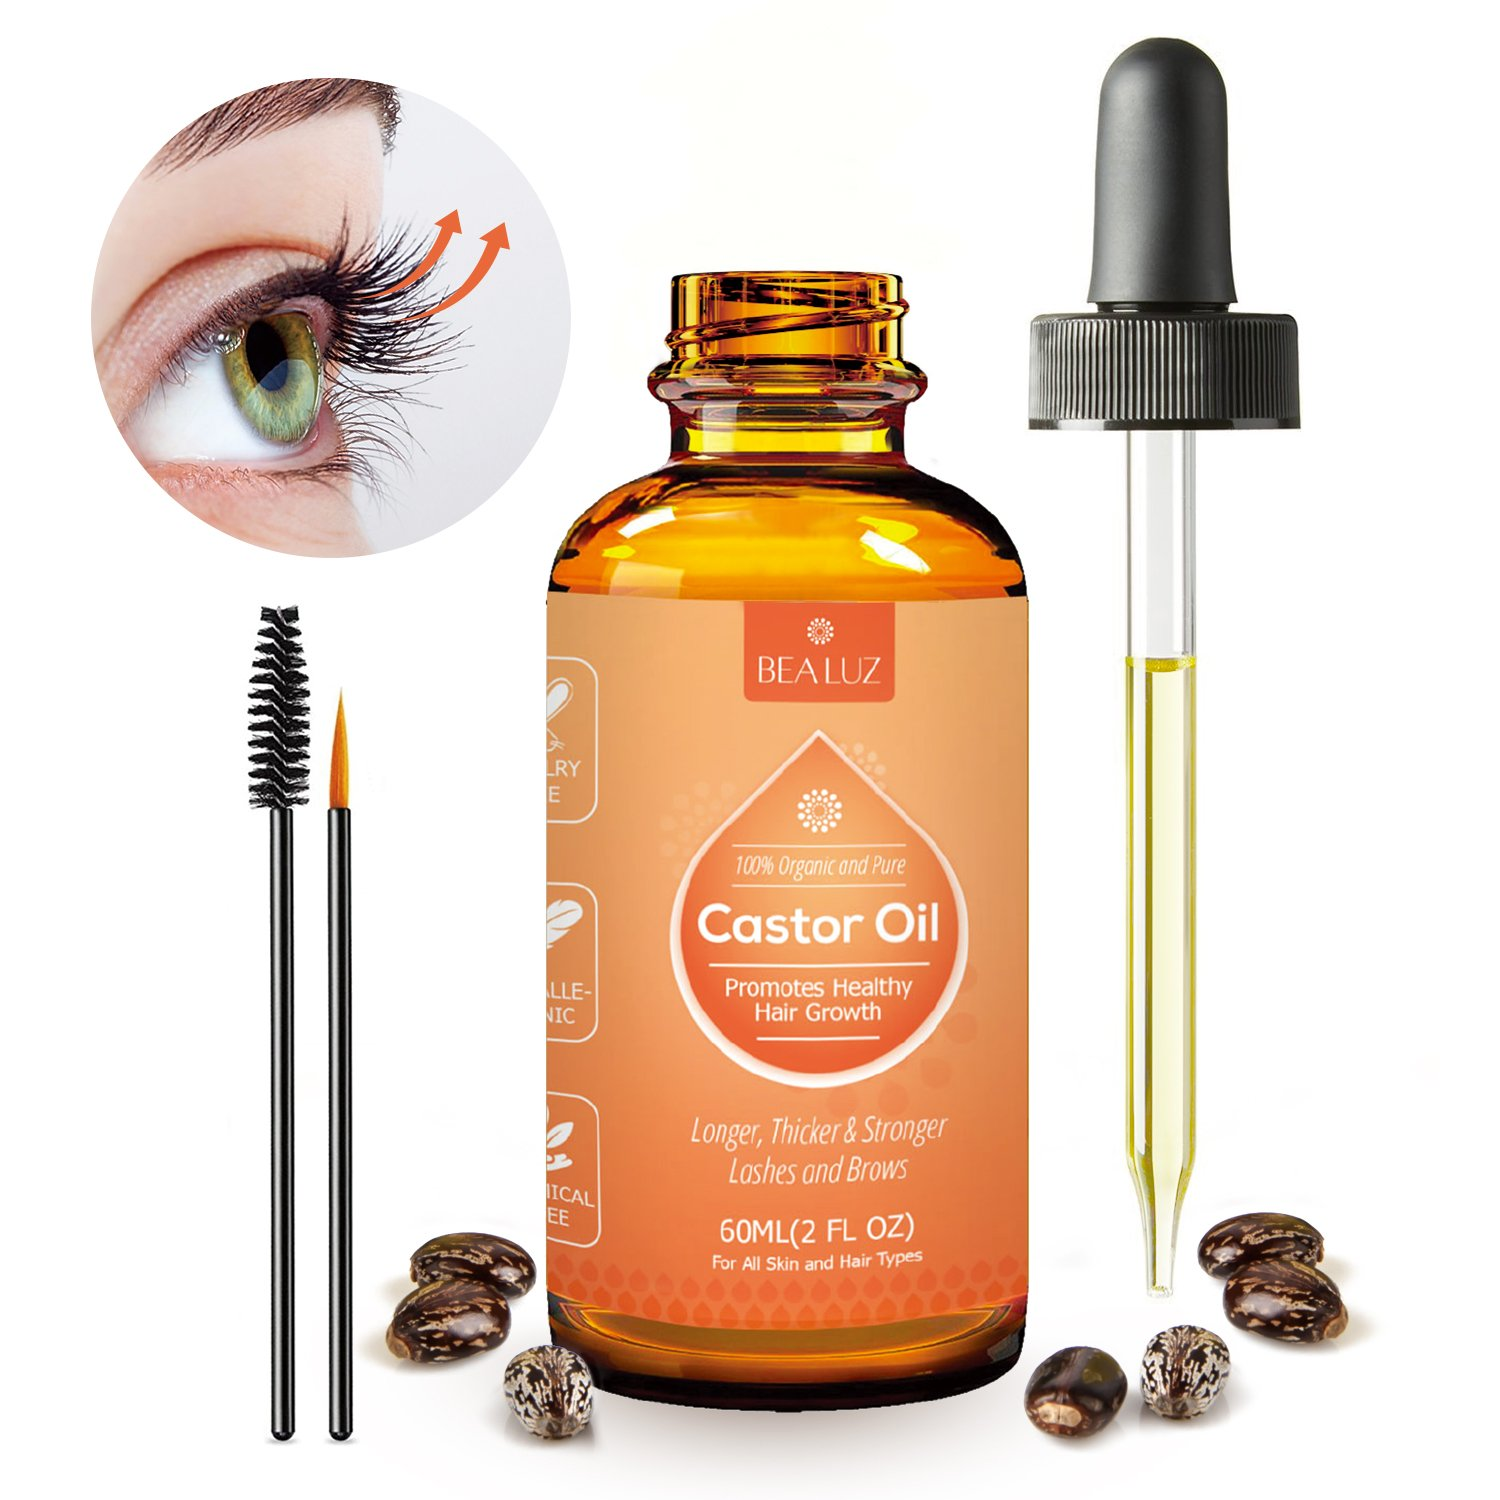 Castor Oil for Skin, Eyelashes Eyebrow Growth for Longer, Fuller, Thicker Lashes & Brows, Hair and Beard Growth (60 ml) Bea Luz